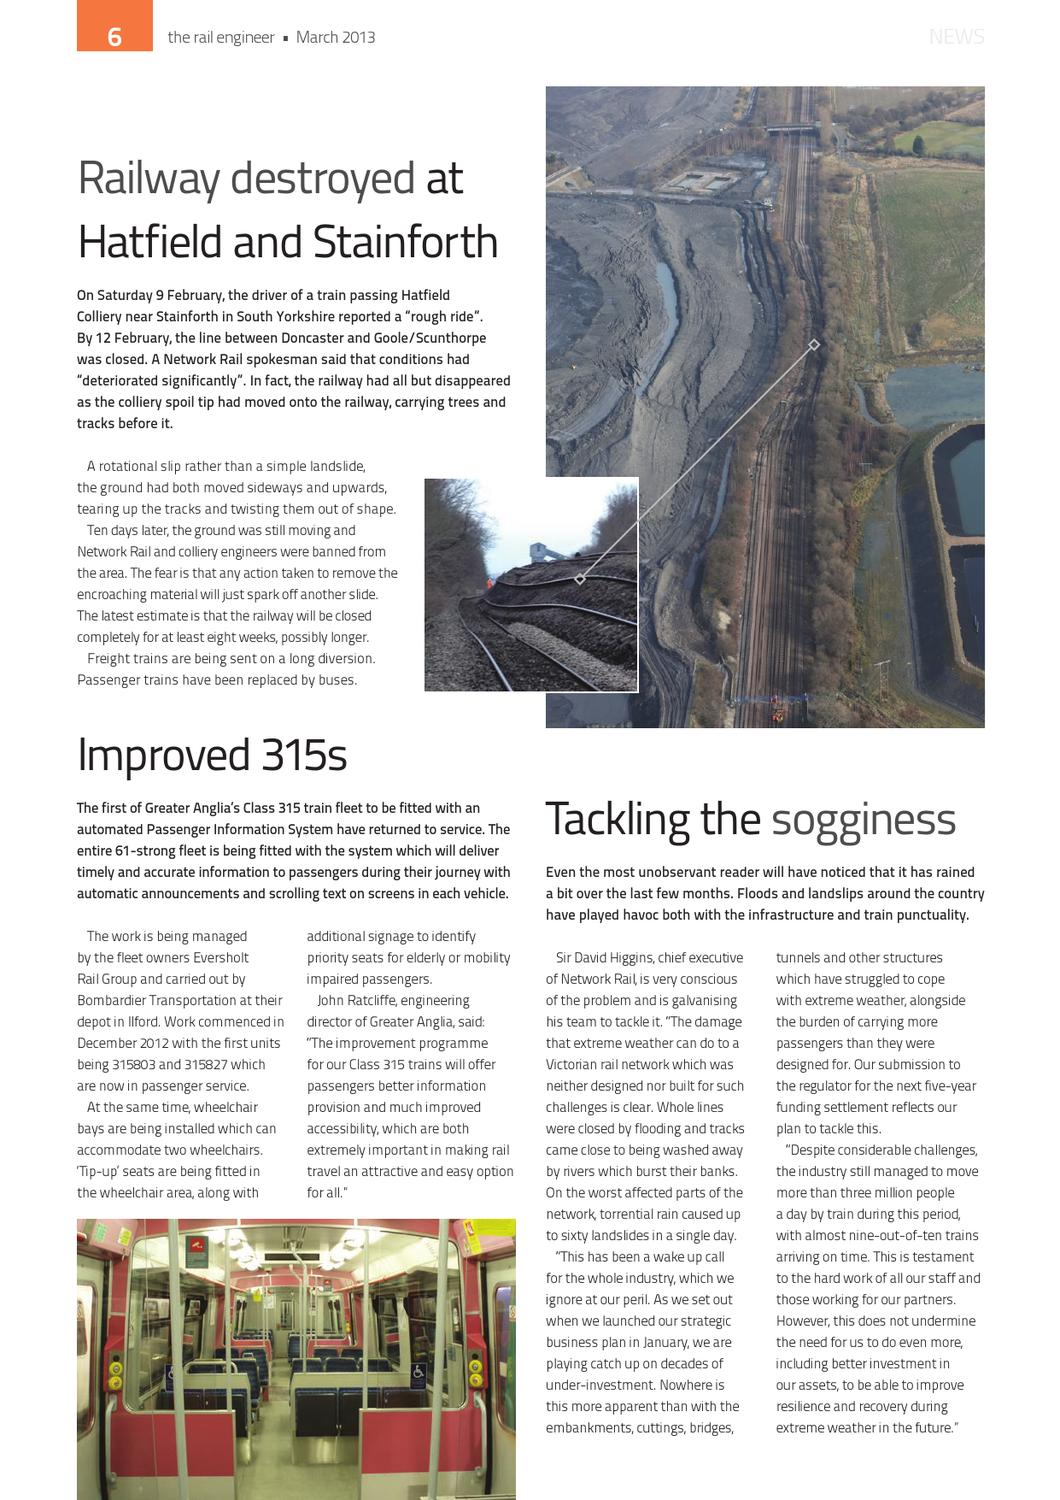 The Rail Engineer - Issue 101 - March 2013 by Rail Media - issuu